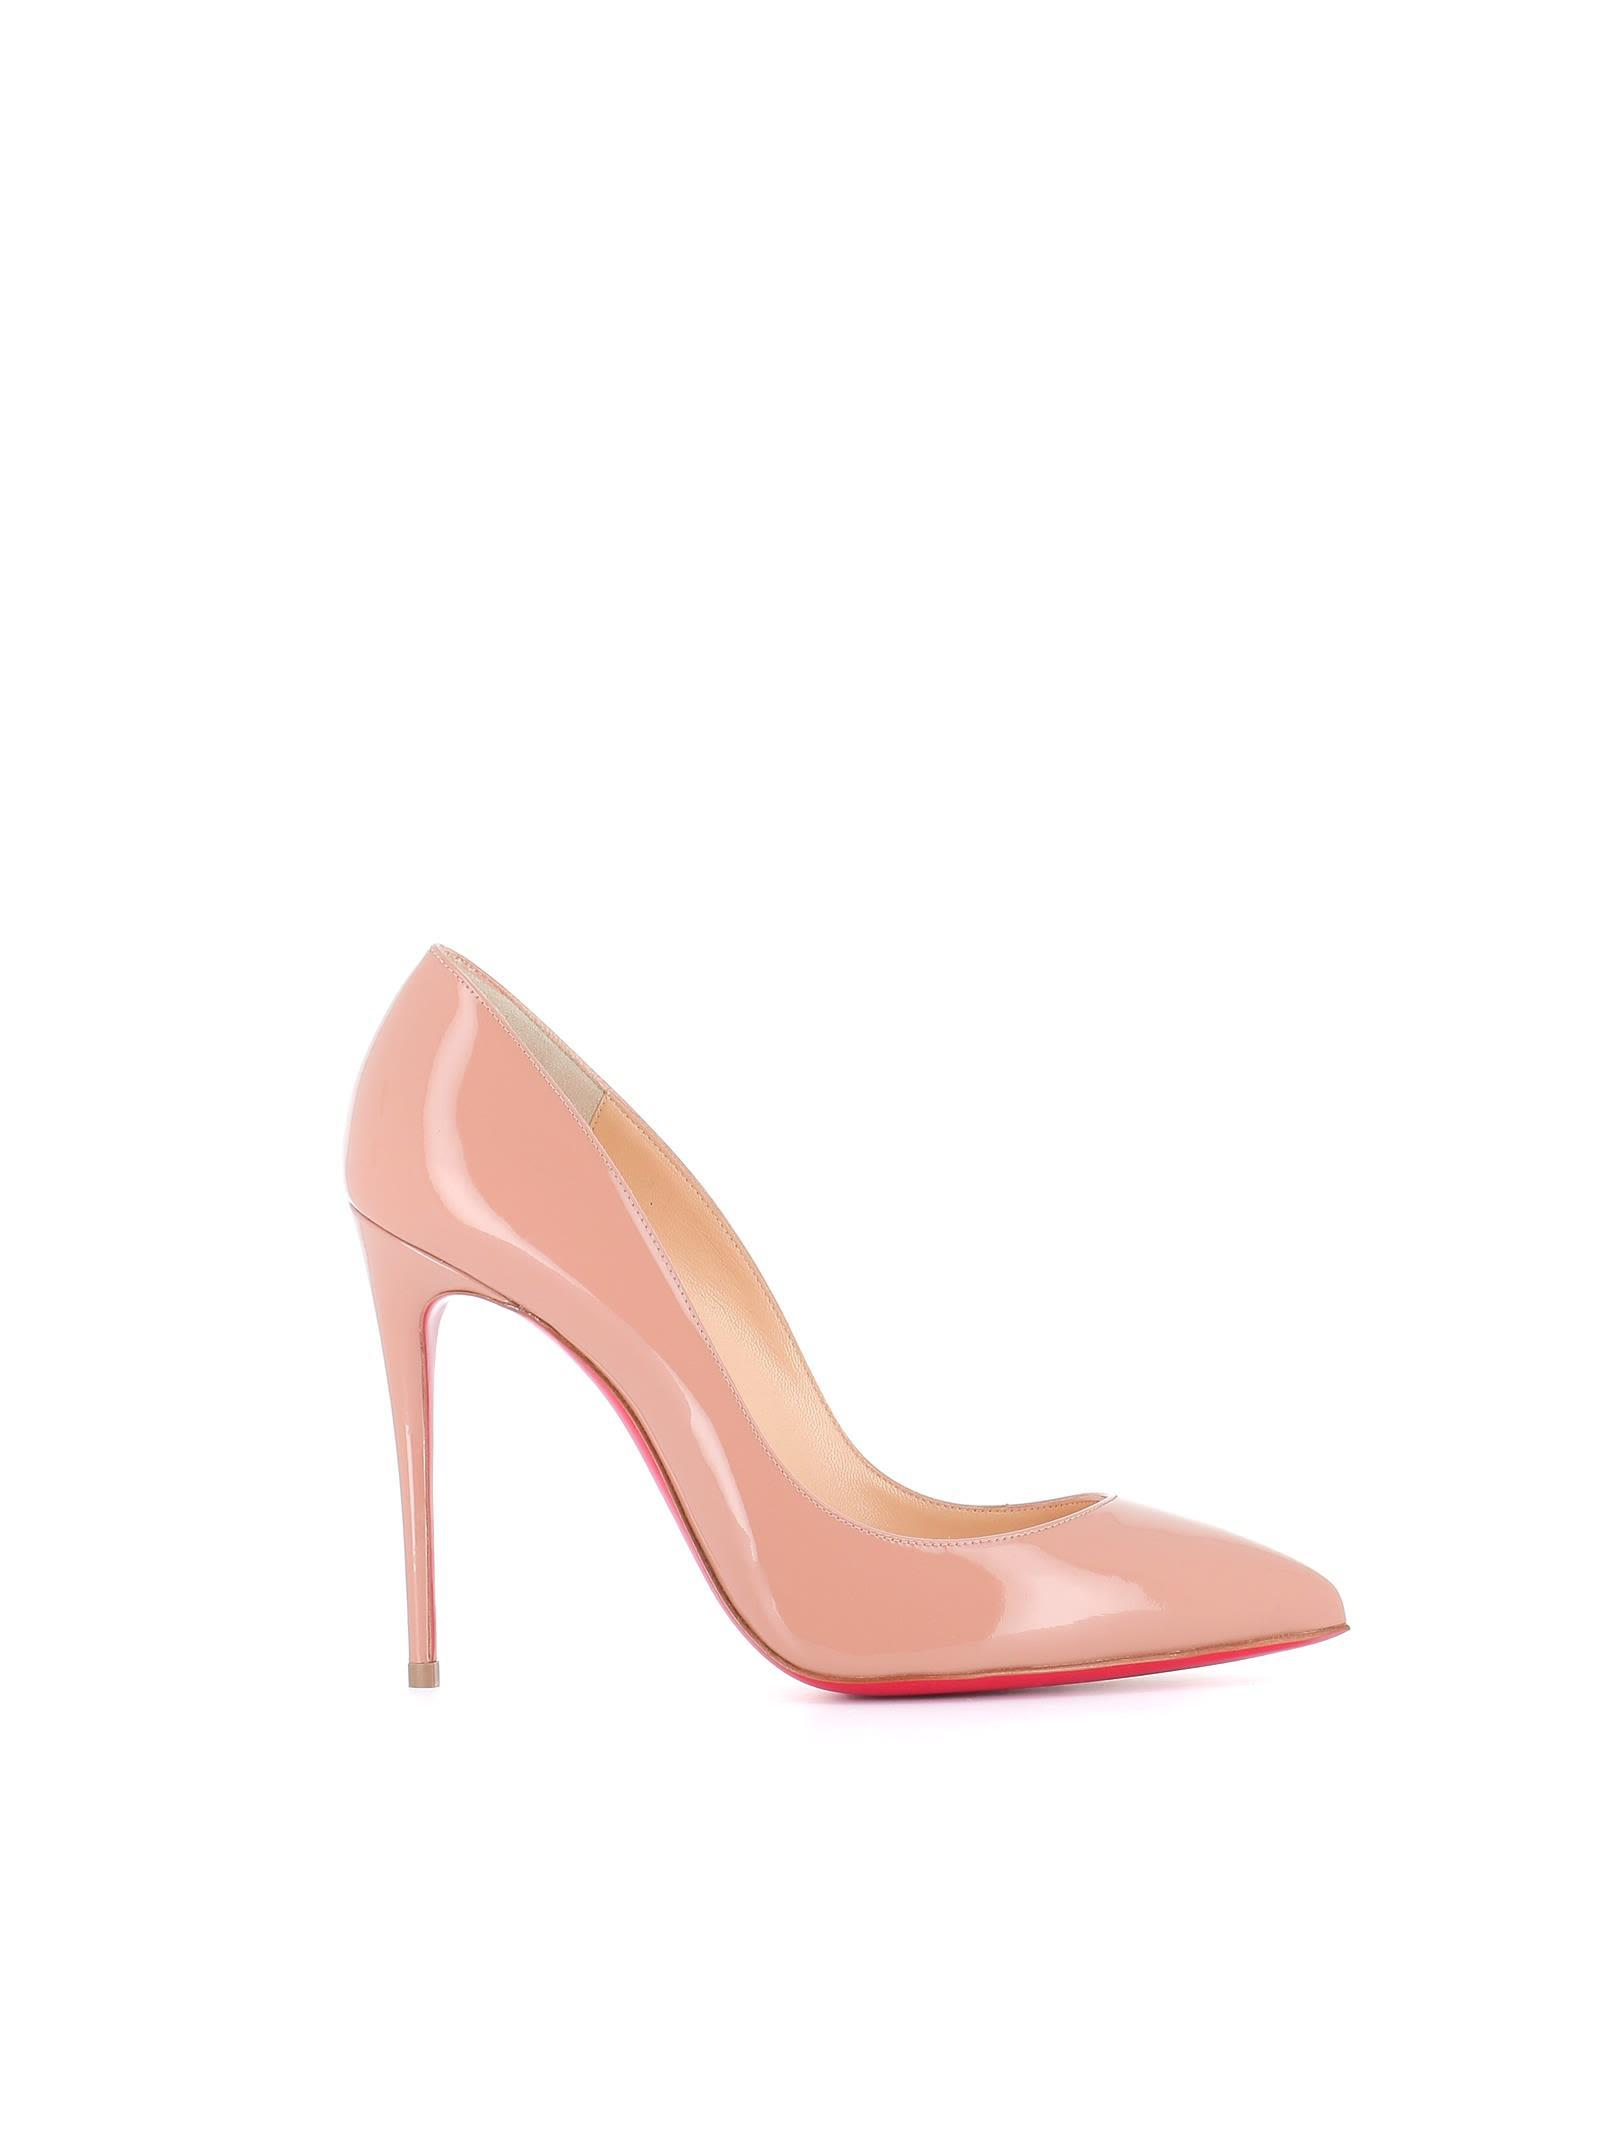 6248e48c1c72 Christian Louboutin Pigalle Follies 100 Beige Patent Leather Pumps ...